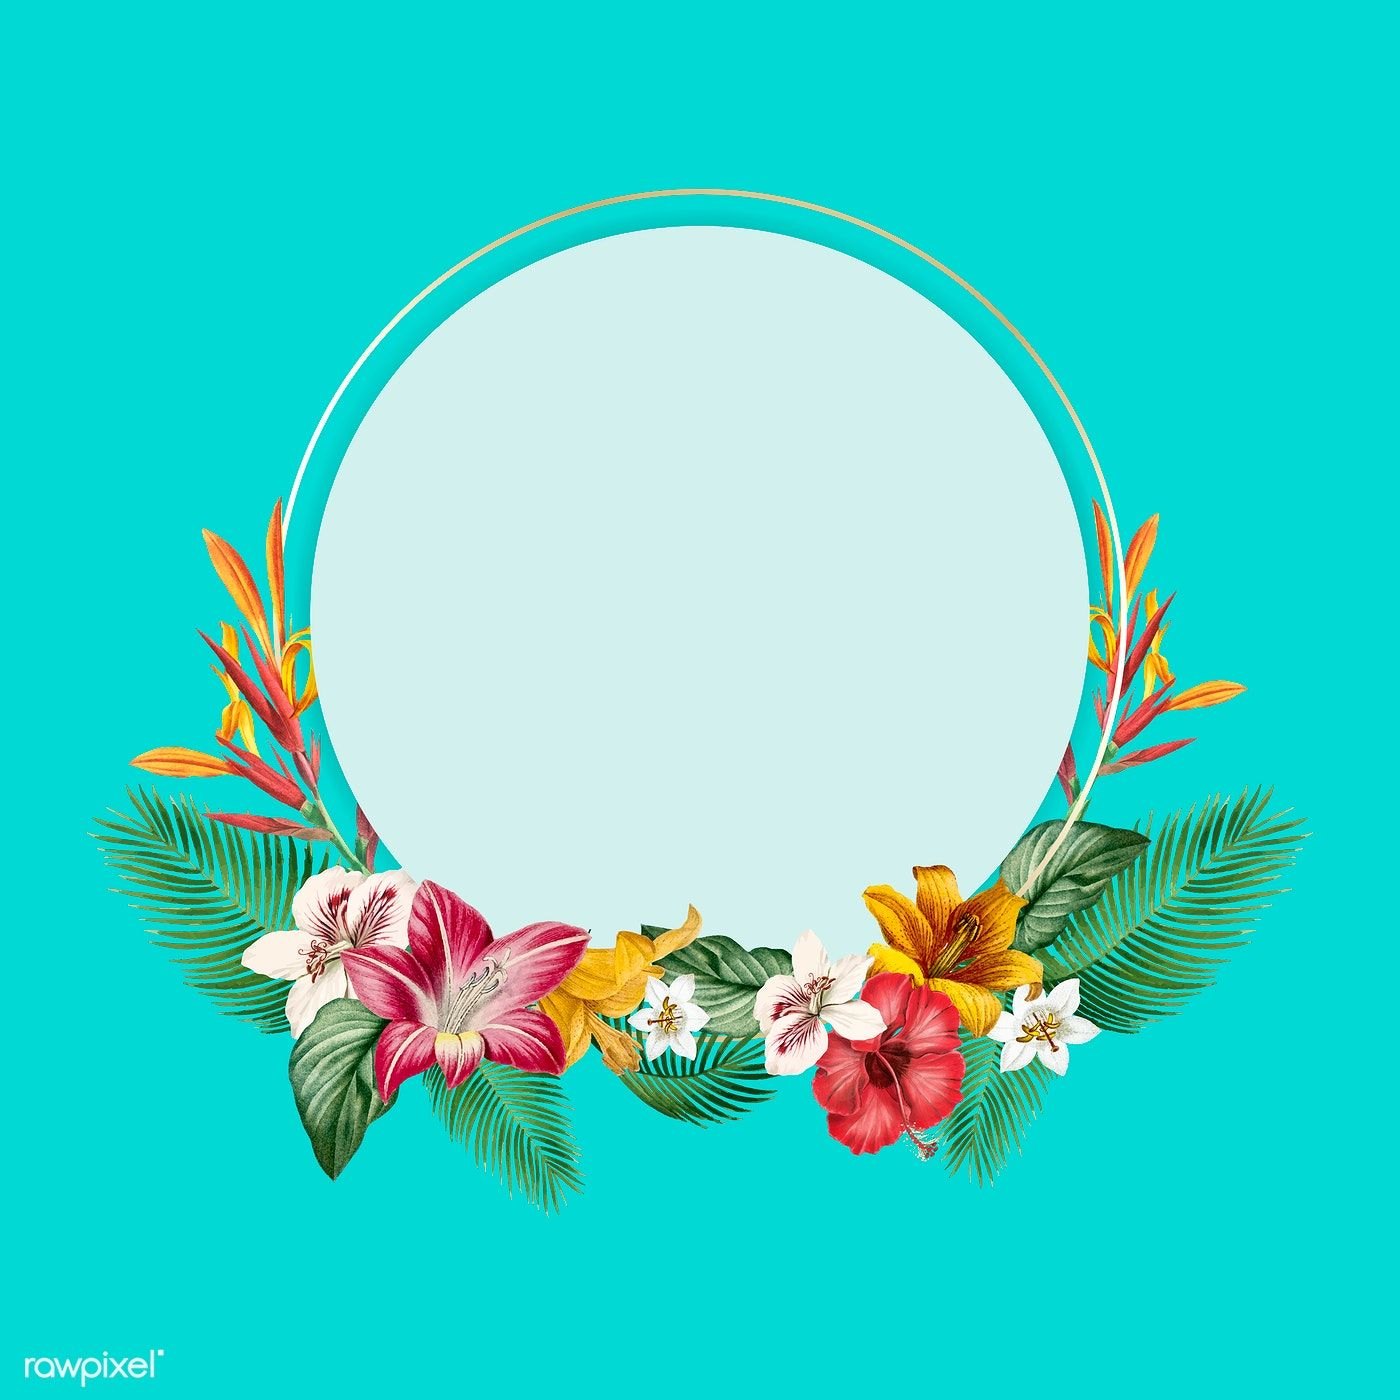 Download Premium Vector Of Tropical Round Frame On Blue Background Vector    Blue Backgrounds, Round Frame, Flower Background Wallpaper